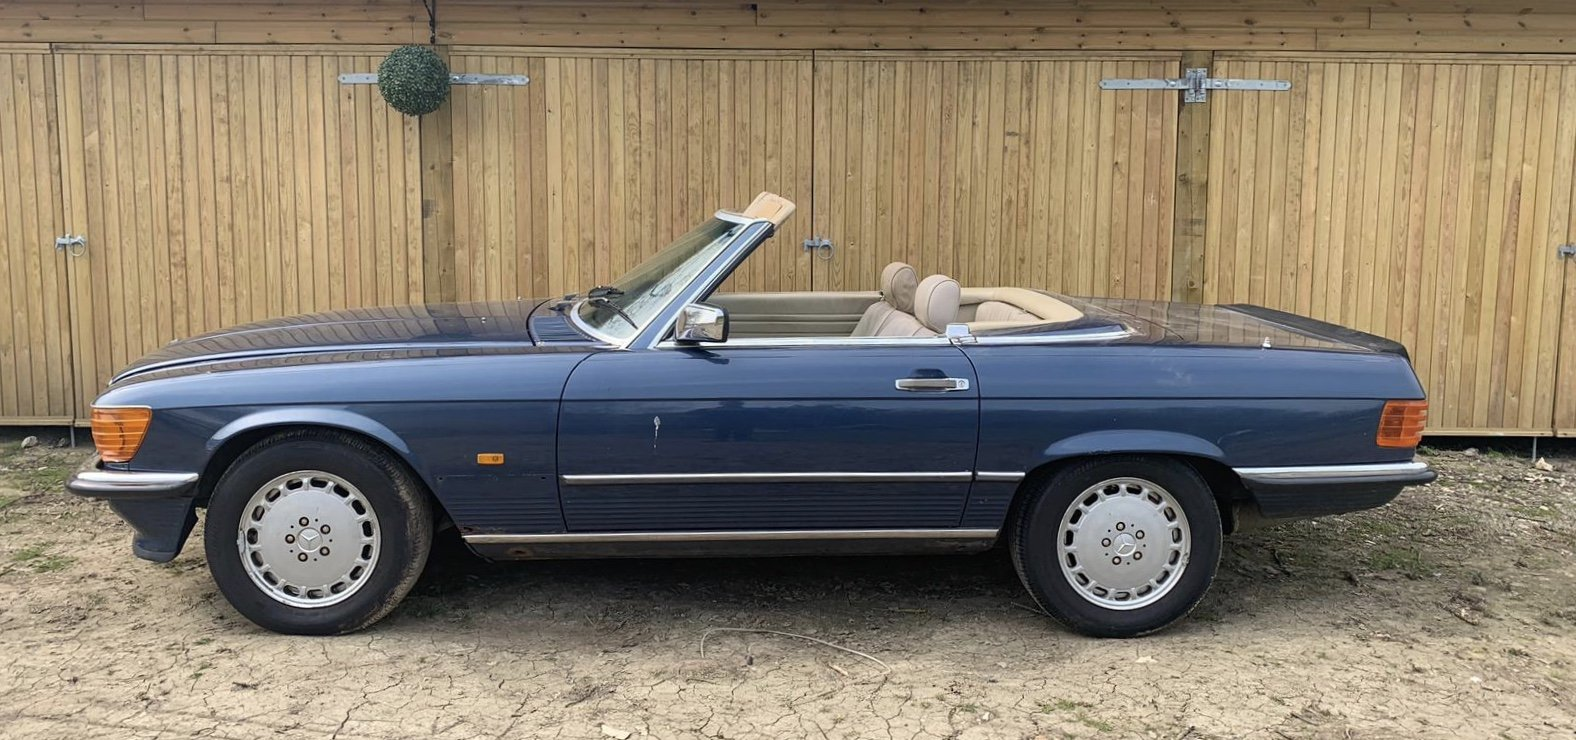 Mercedes 500sl facelift r107 1988 For Sale (picture 2 of 4)